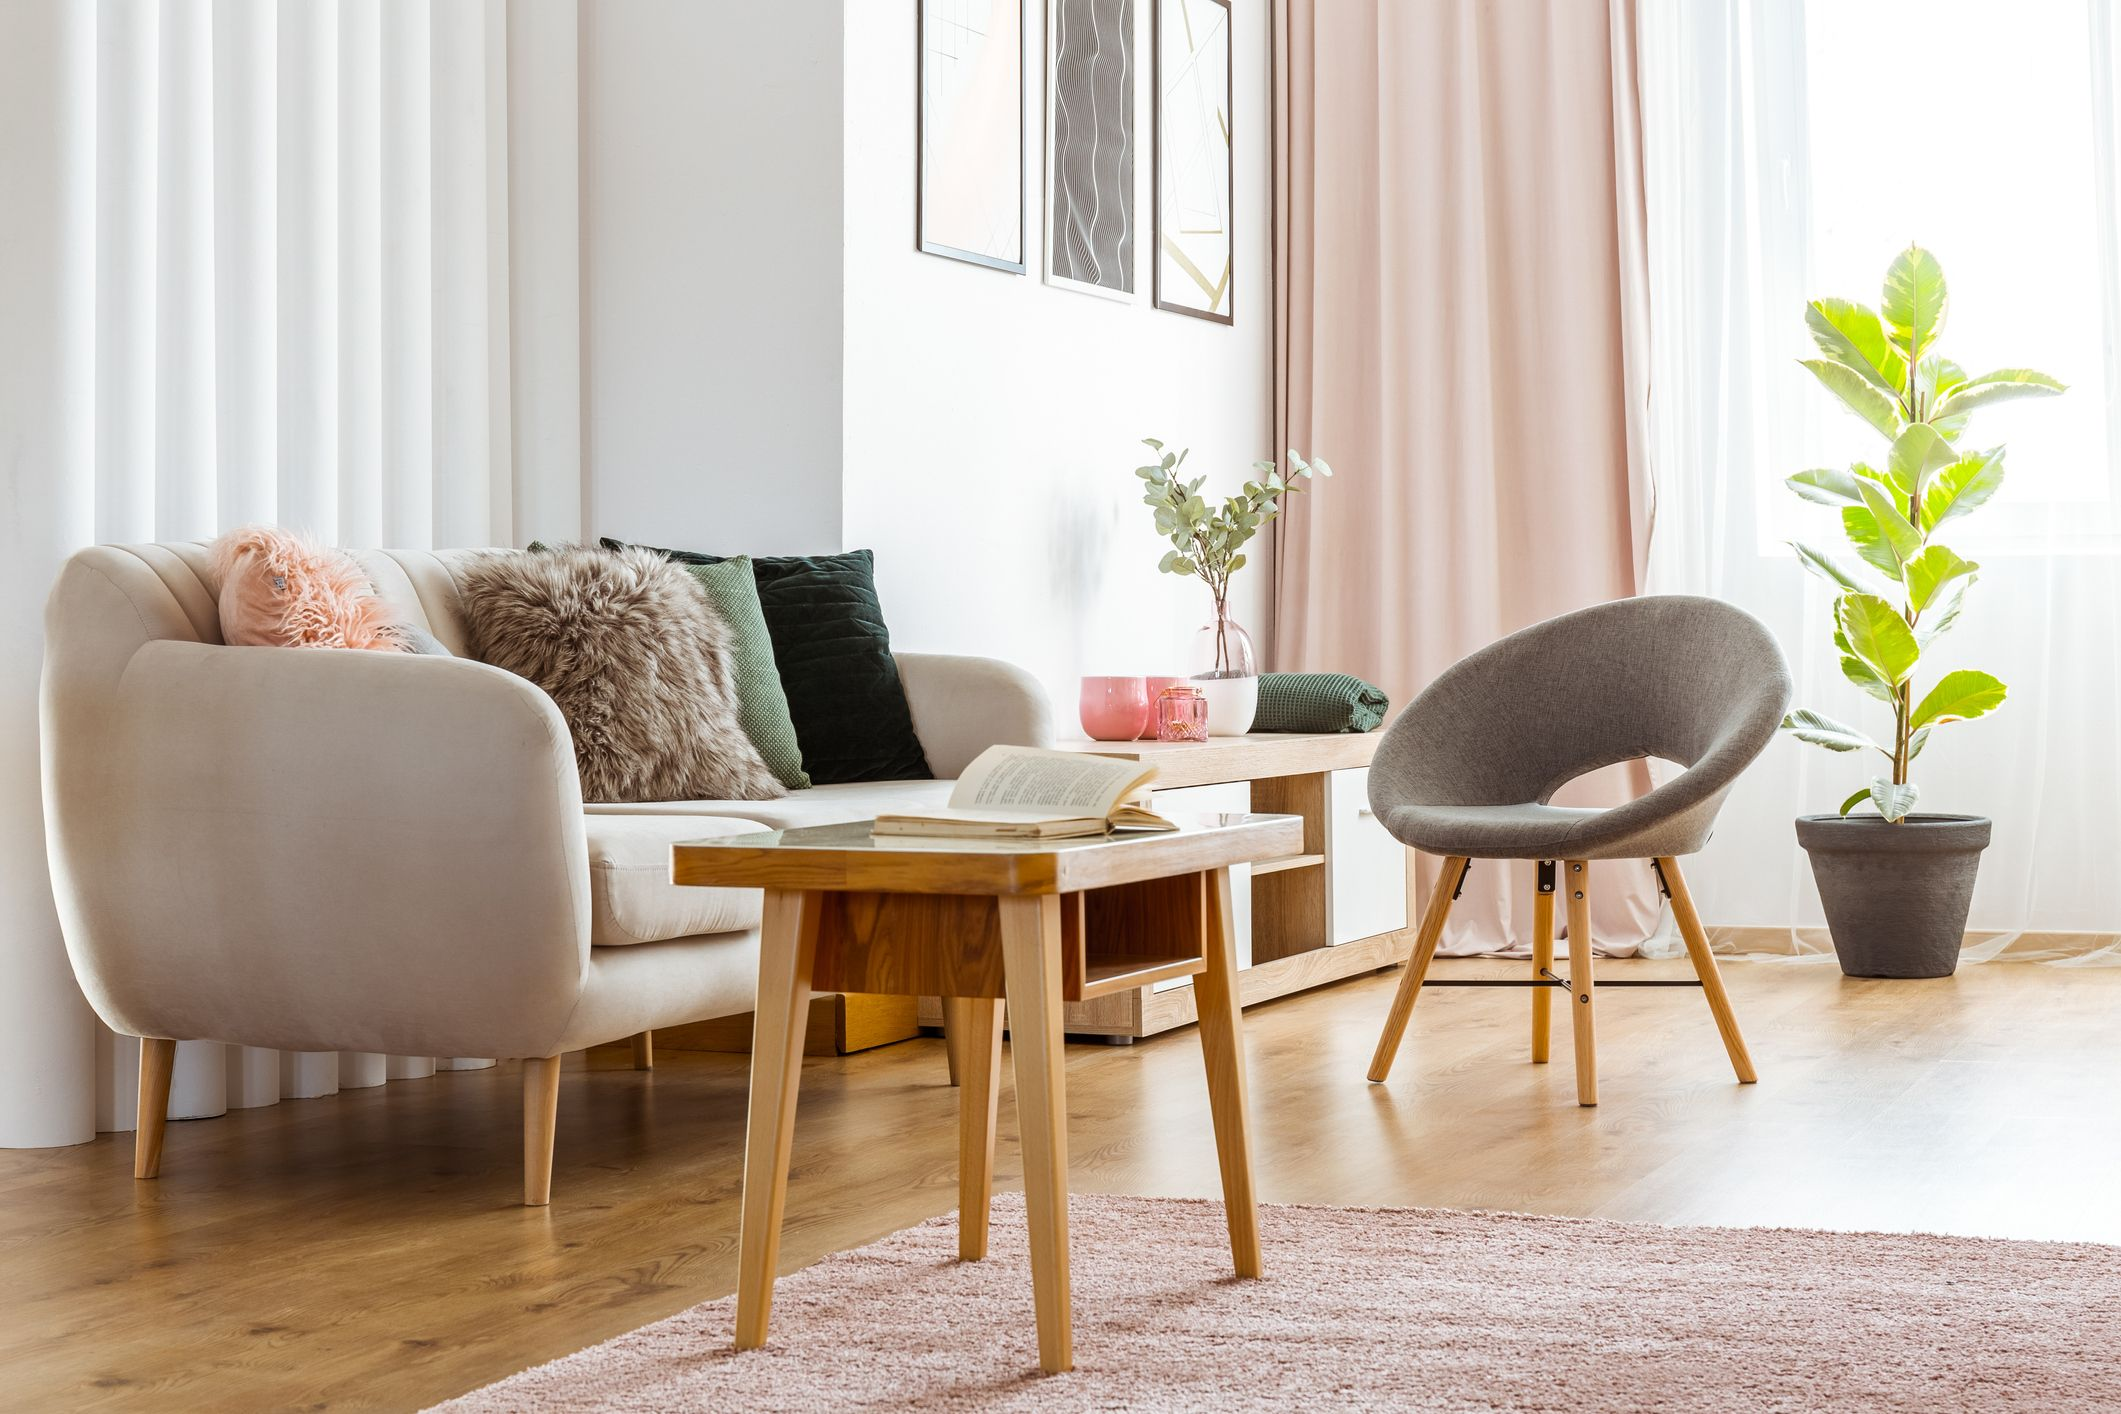 This Is Where You'll Find the Best Furniture and Decor Deals This Memorial Day Weekend